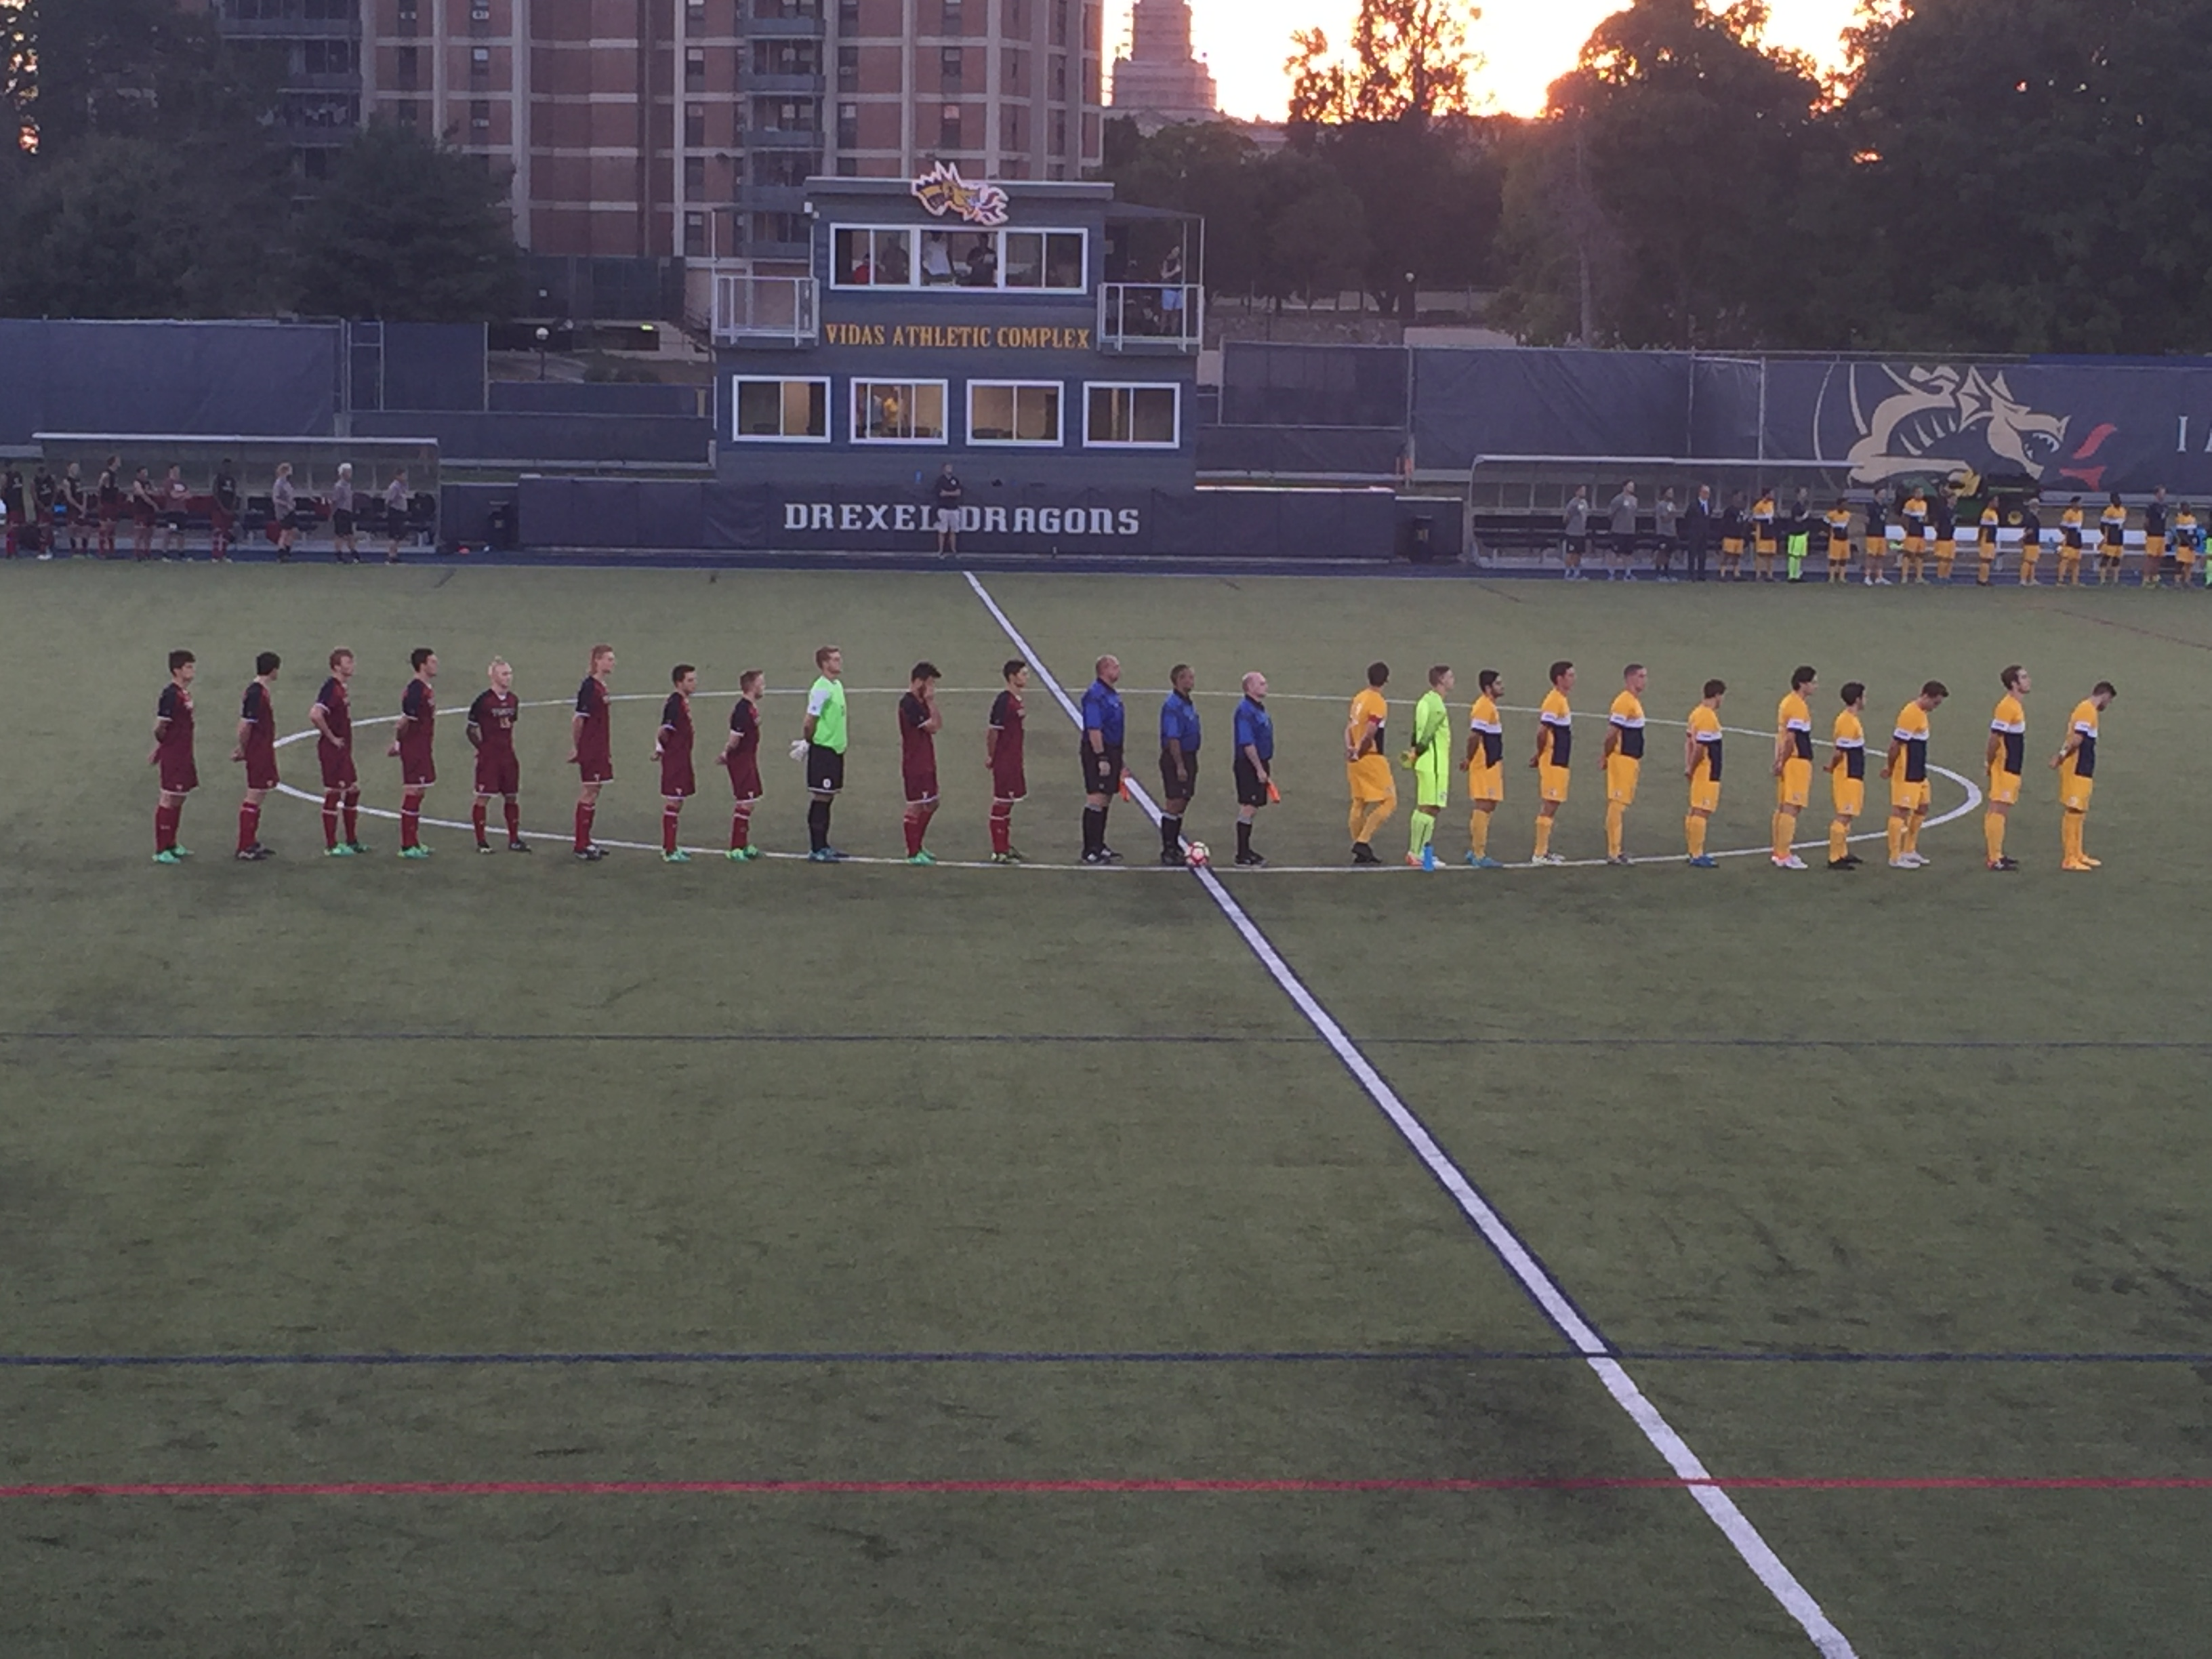 Temple Men's Soccer loses to Drexel in overtime.